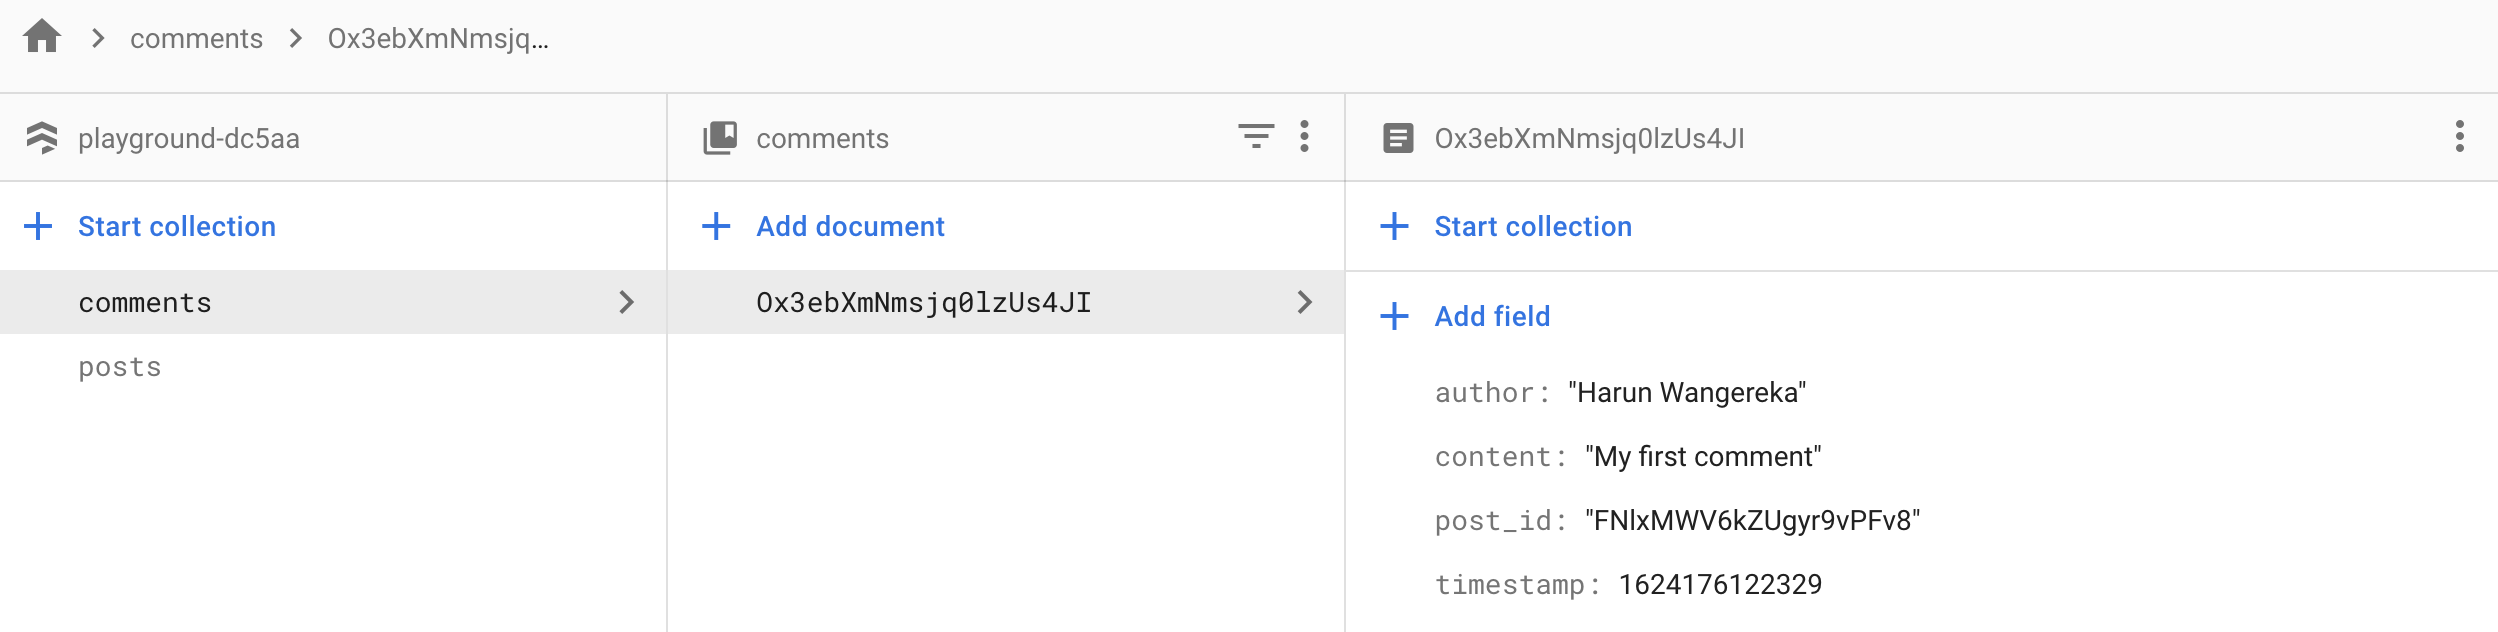 Comments Collection in Firestore Database.